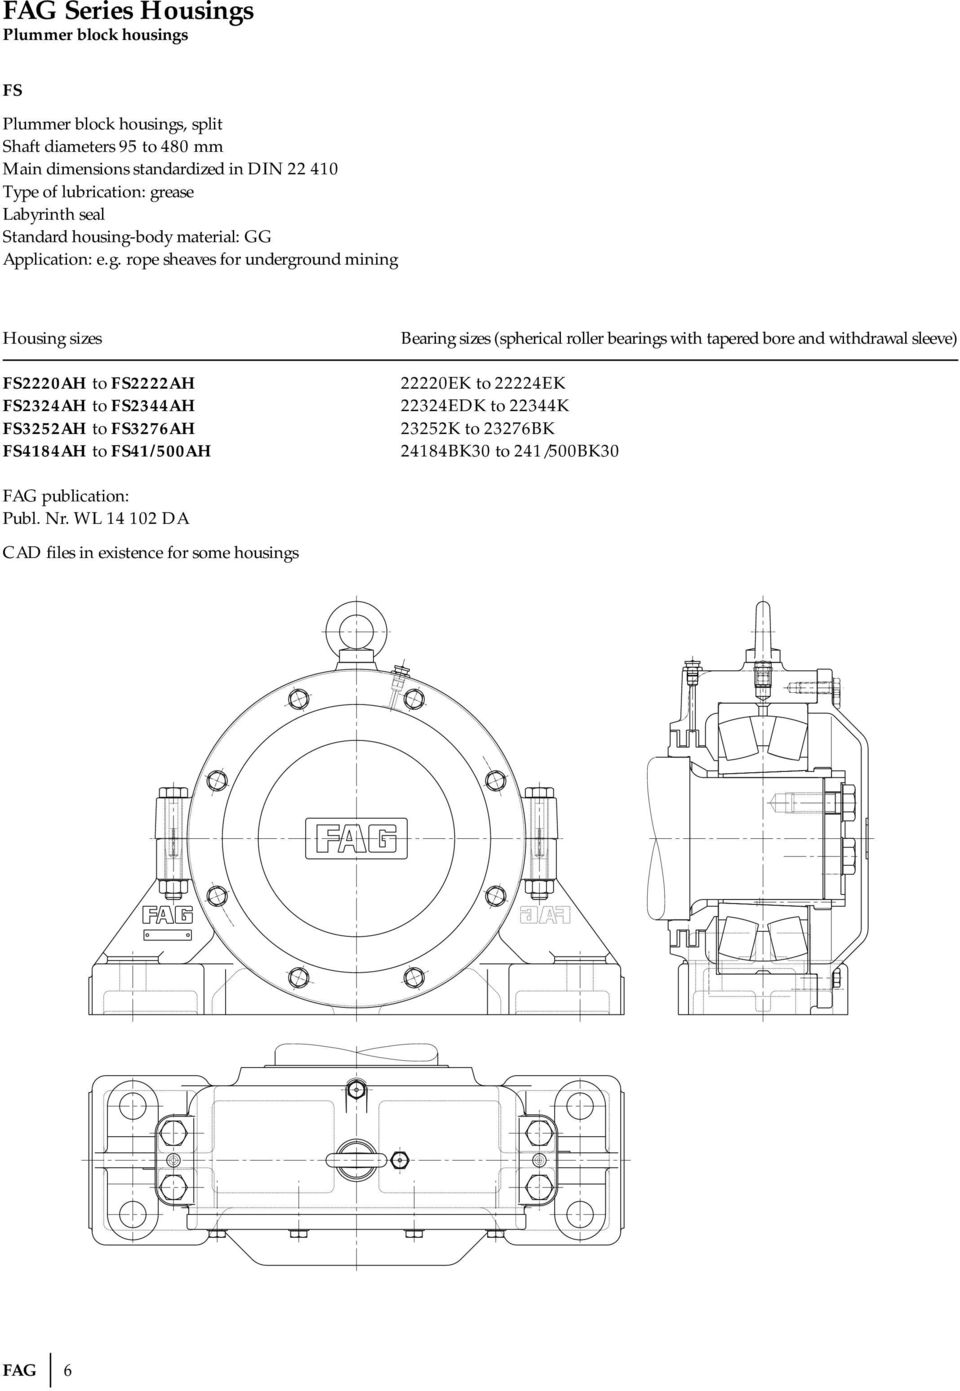 Technical Information Pdf Roll Bearing Energy Saving Ball Mill Diagram Fs41 500ah Sizes Spherical Roller Bearings With Tapered Bore And Withdrawal Sleeve